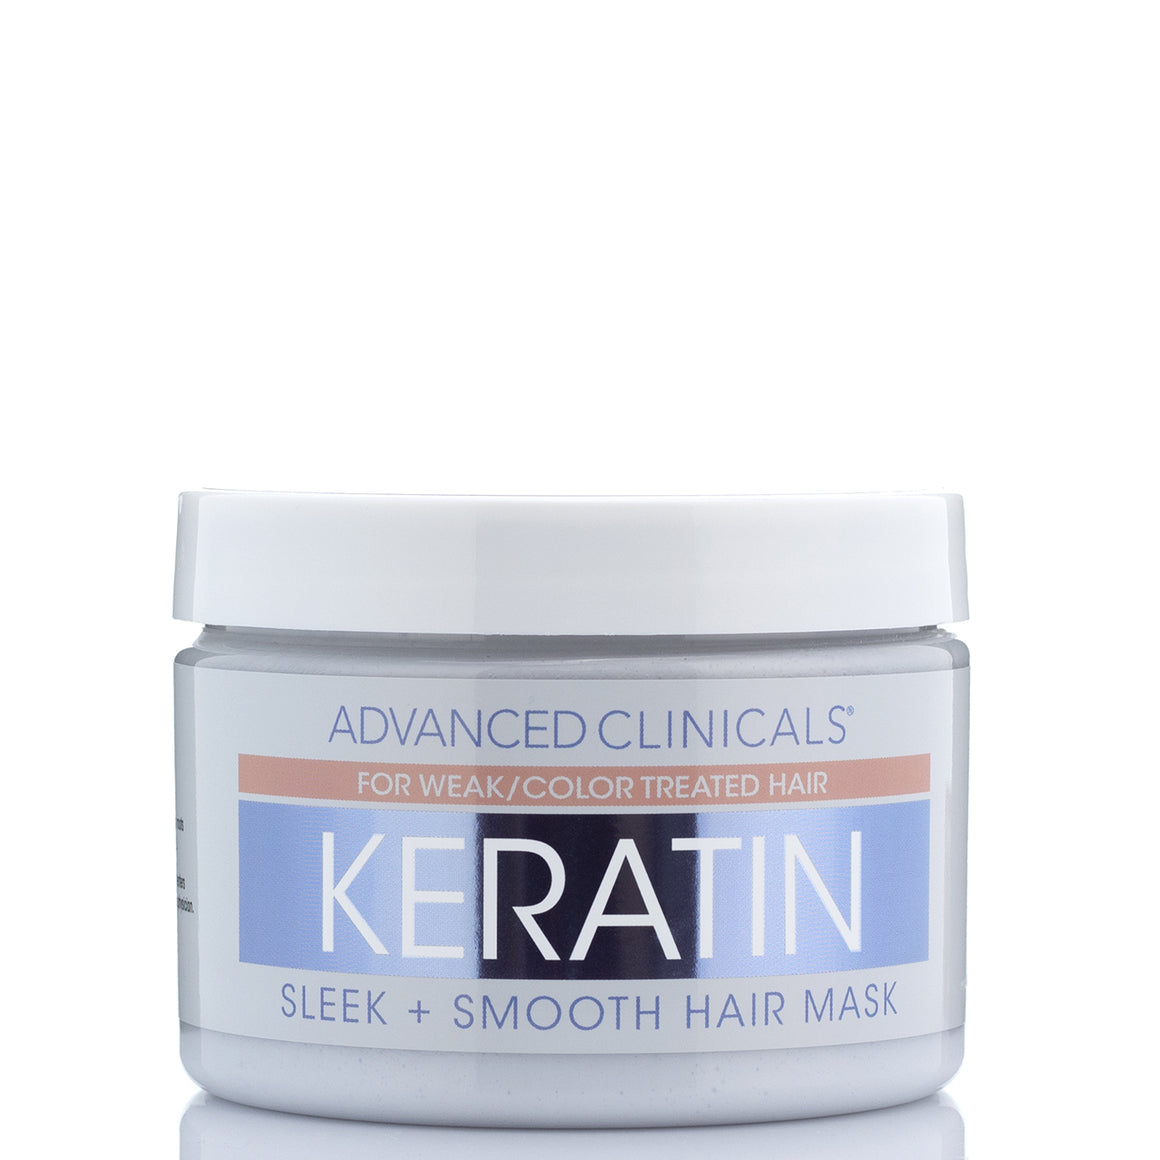 Keratin Hair Repair Mask with Shea Butter & Silk Amino Acids 12 oz.